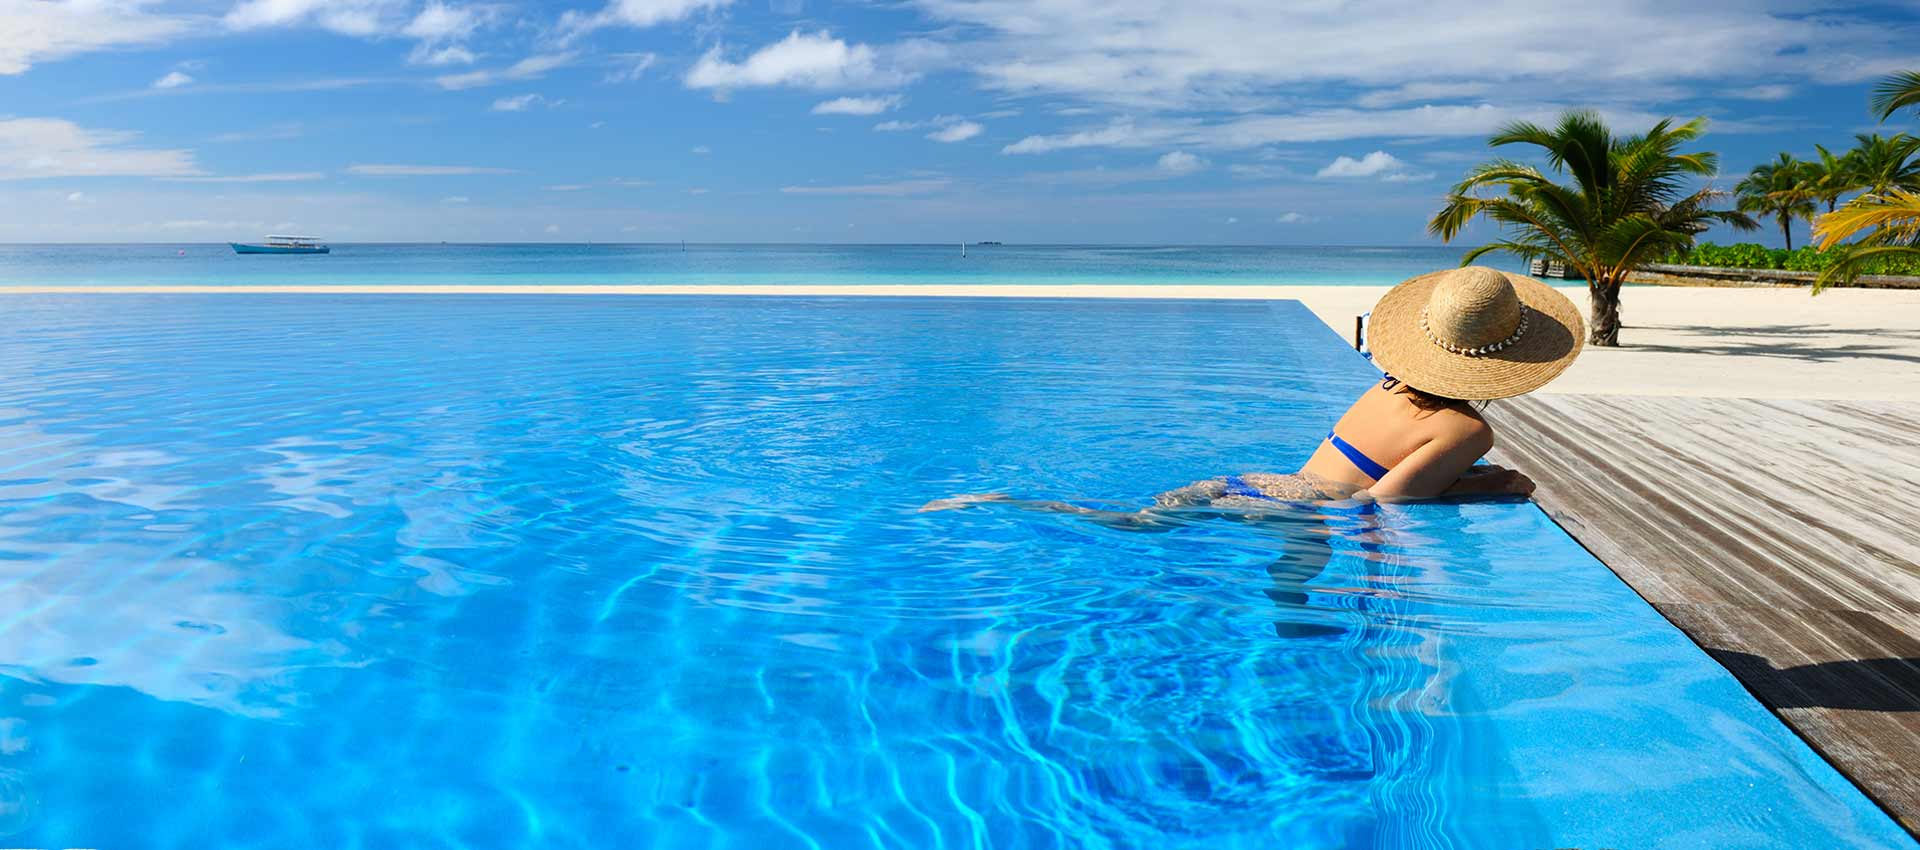 Woman on the edge of an infinity pool overlooking the beach